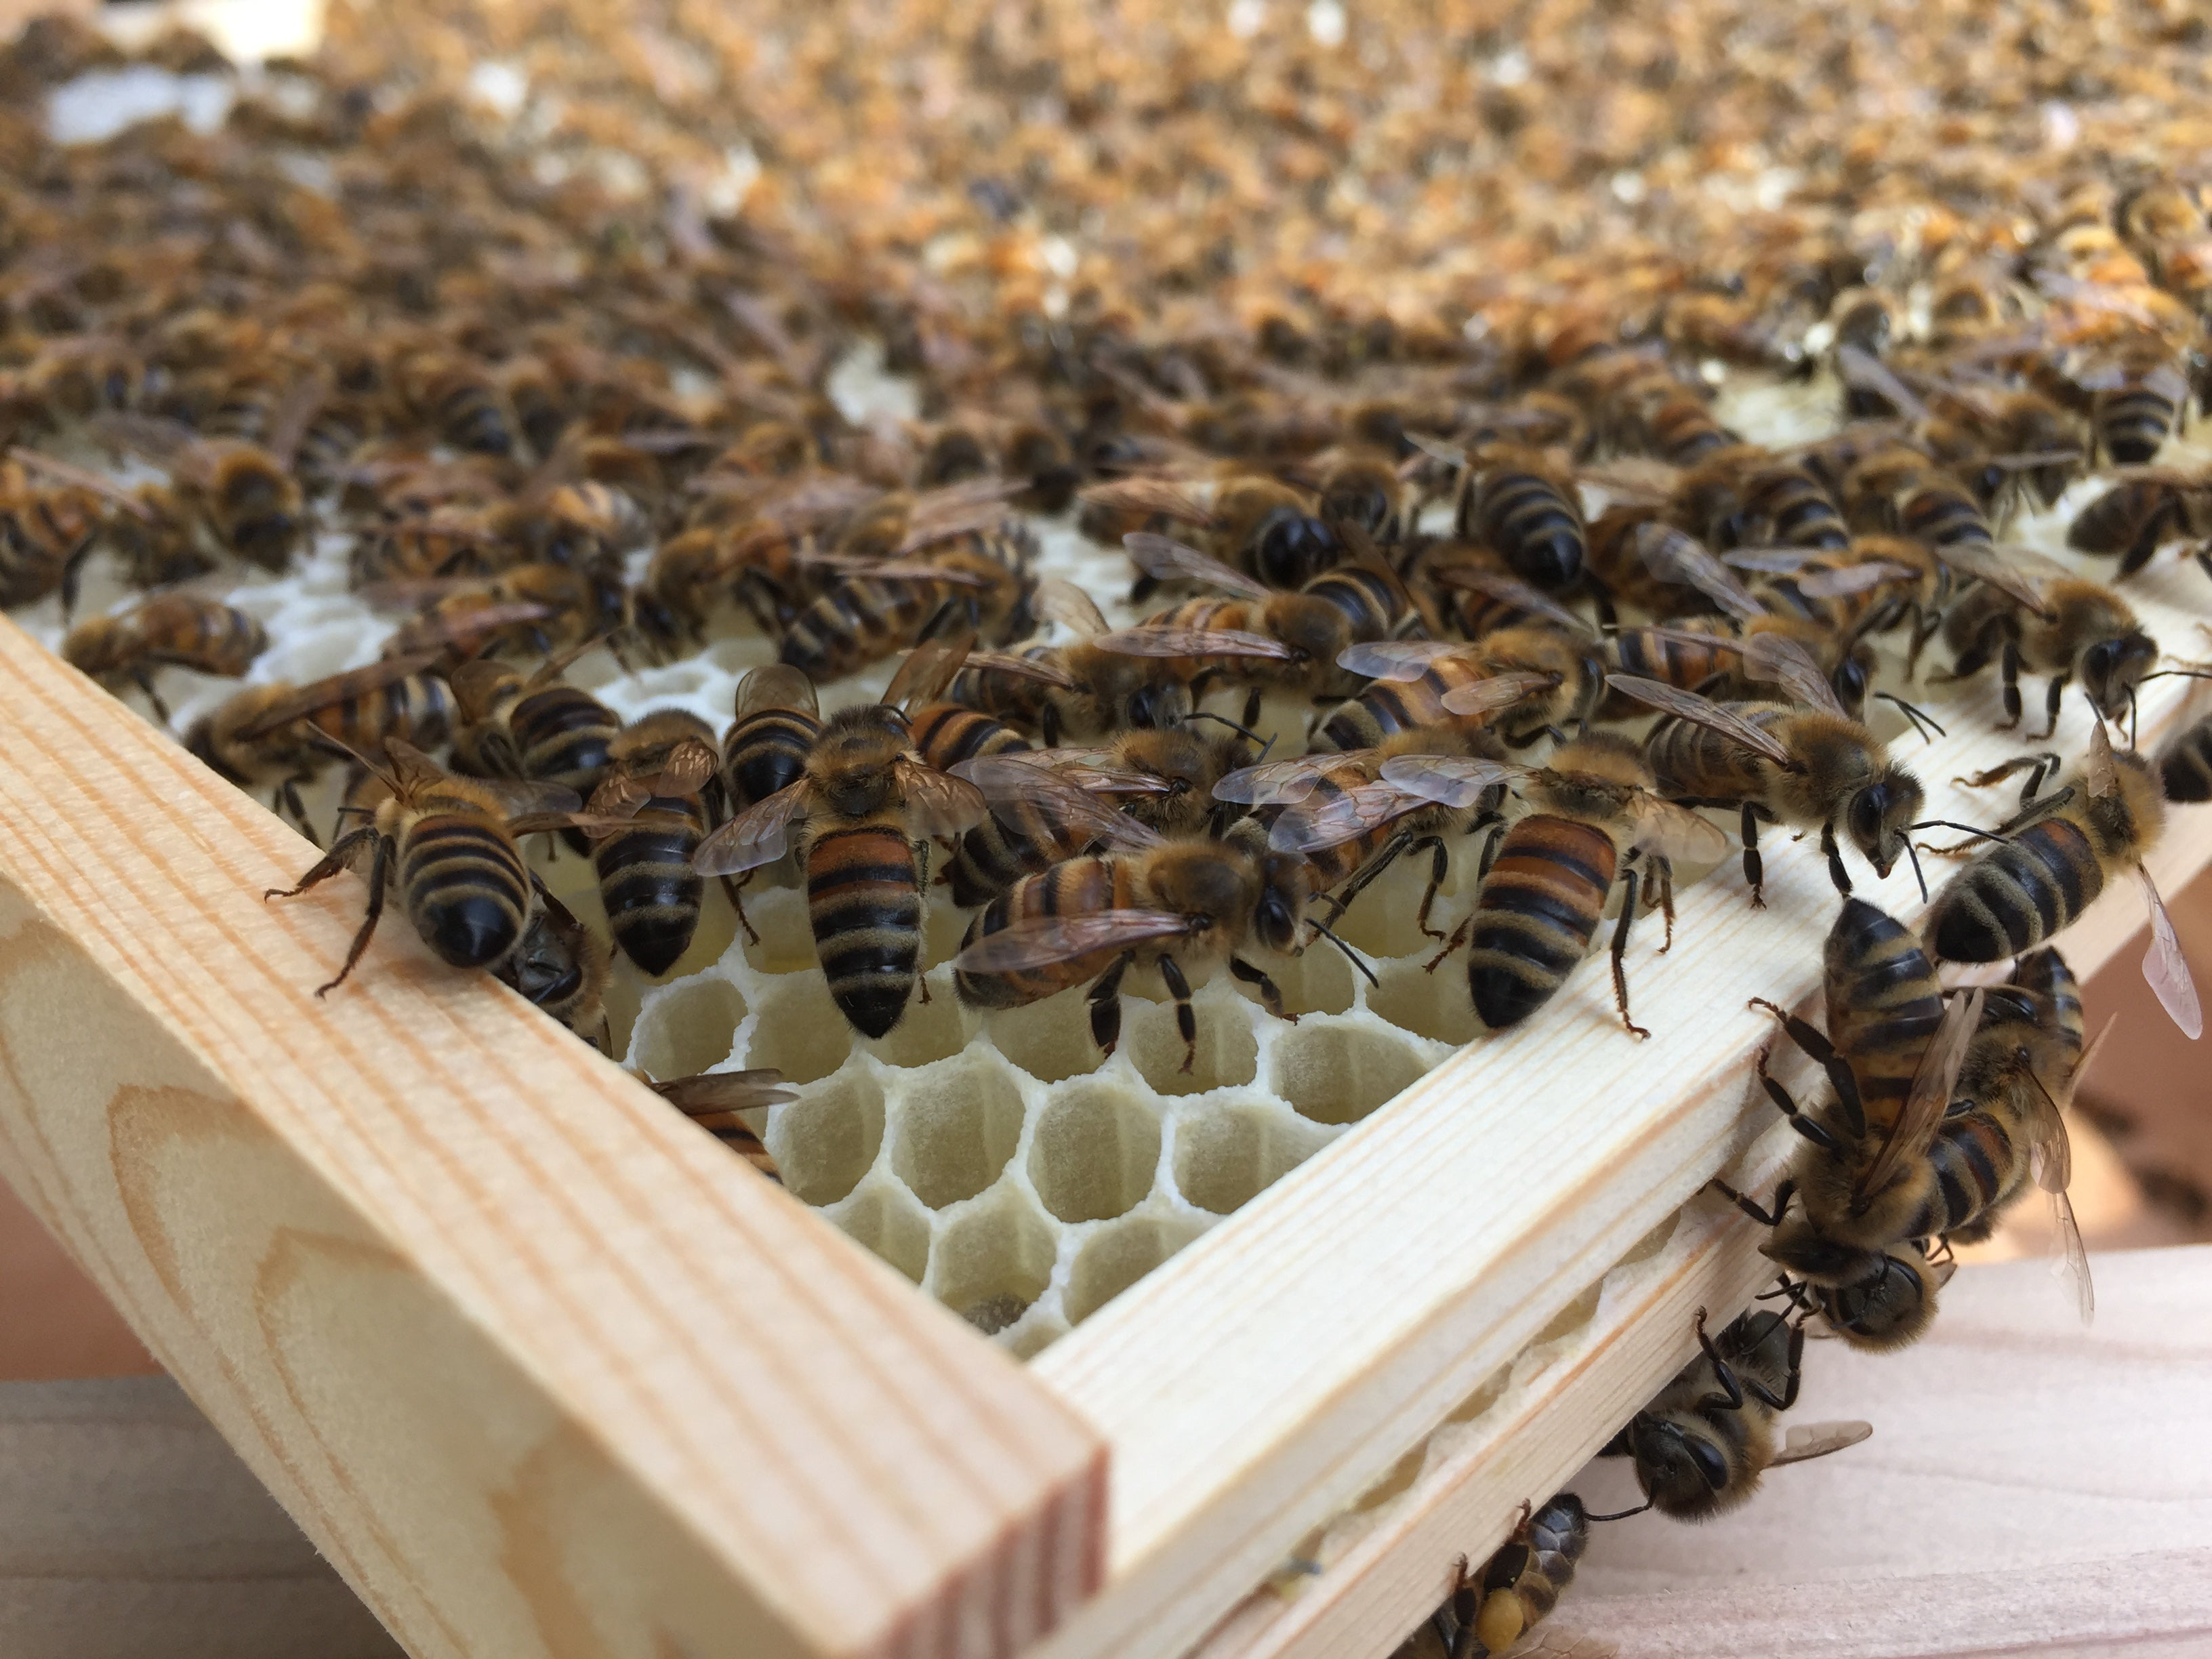 10 Bee facts from Bees & Co